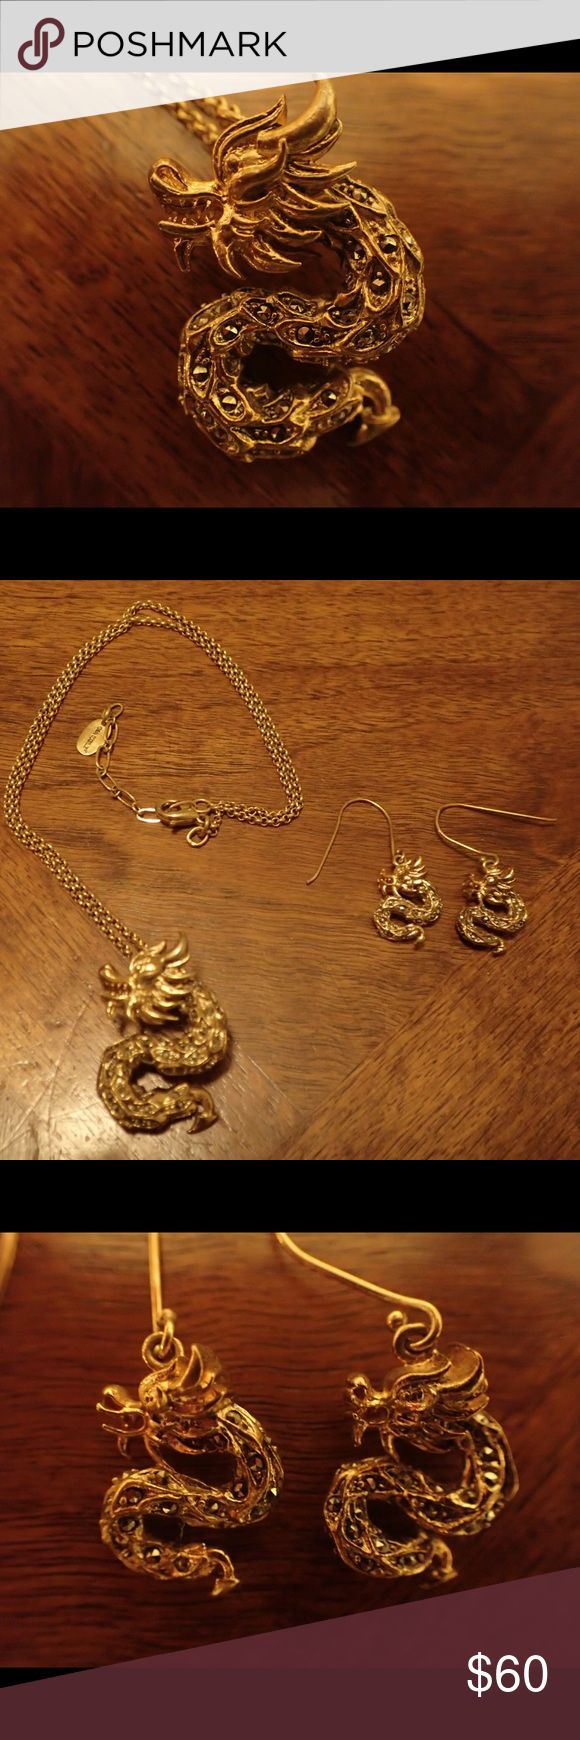 "14-Kt Gold Dragon Necklace and Earring Set 14kt gold-plated dragon necklace and matching earrings. Necklace is on a 18"" gold chain with extension out to 20"".   Necklace pendant dragon is 1 1/2"" in length and earring dragons are 3/4"". Gia Mele Jewelry"